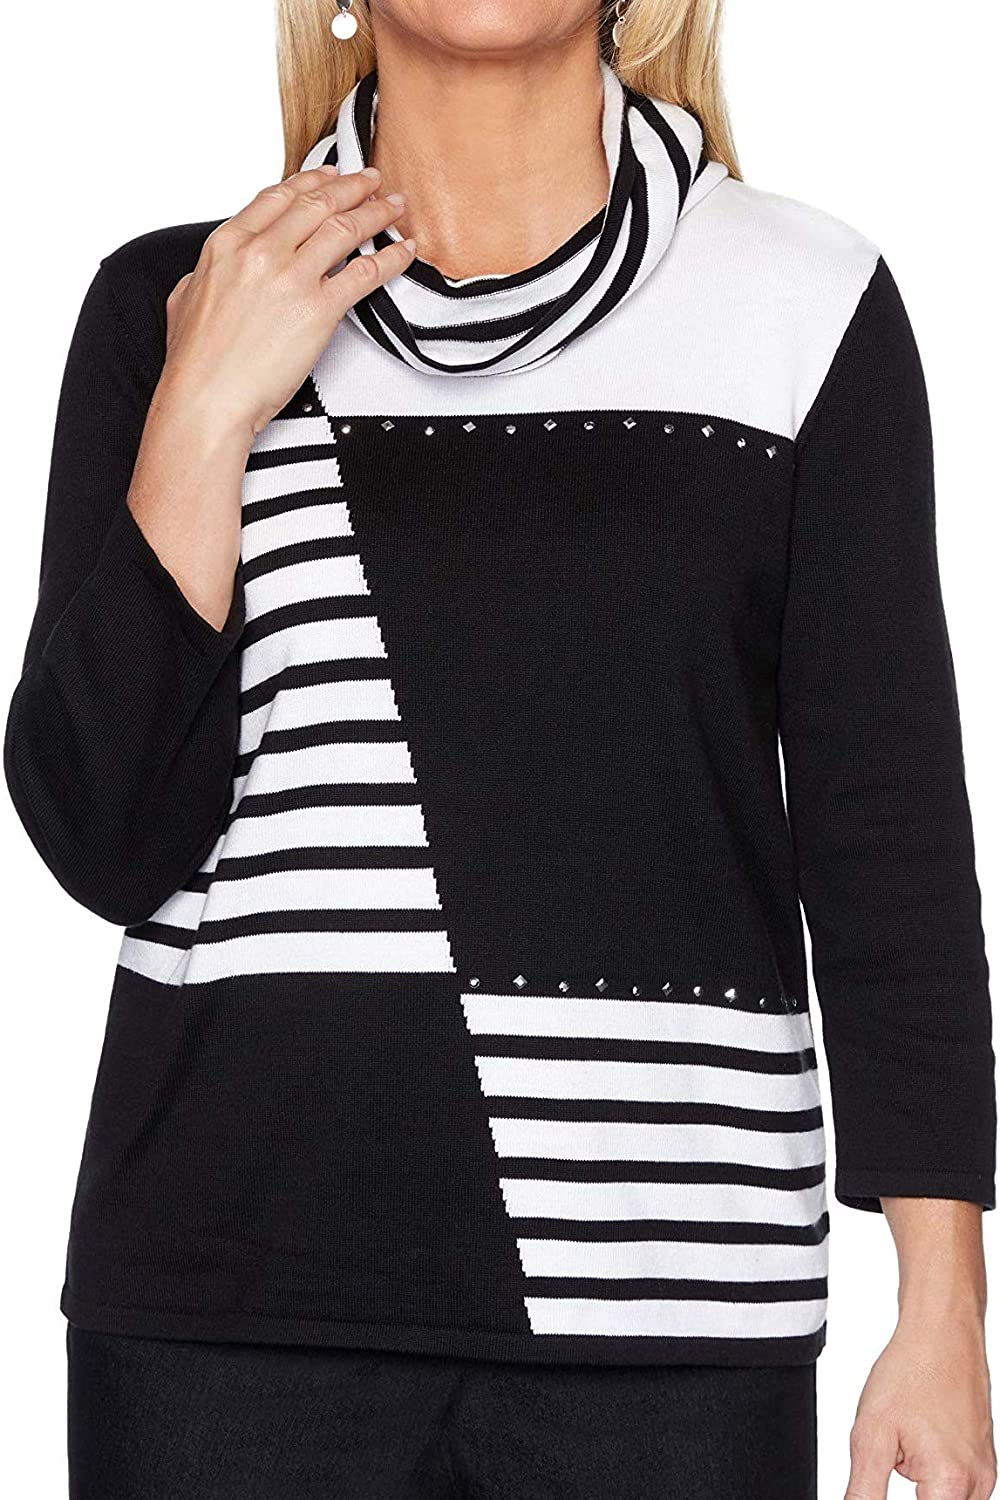 Alfred Dunner Well Red Black and Det Max 51% OFF White Sweater Pullover with Max 72% OFF